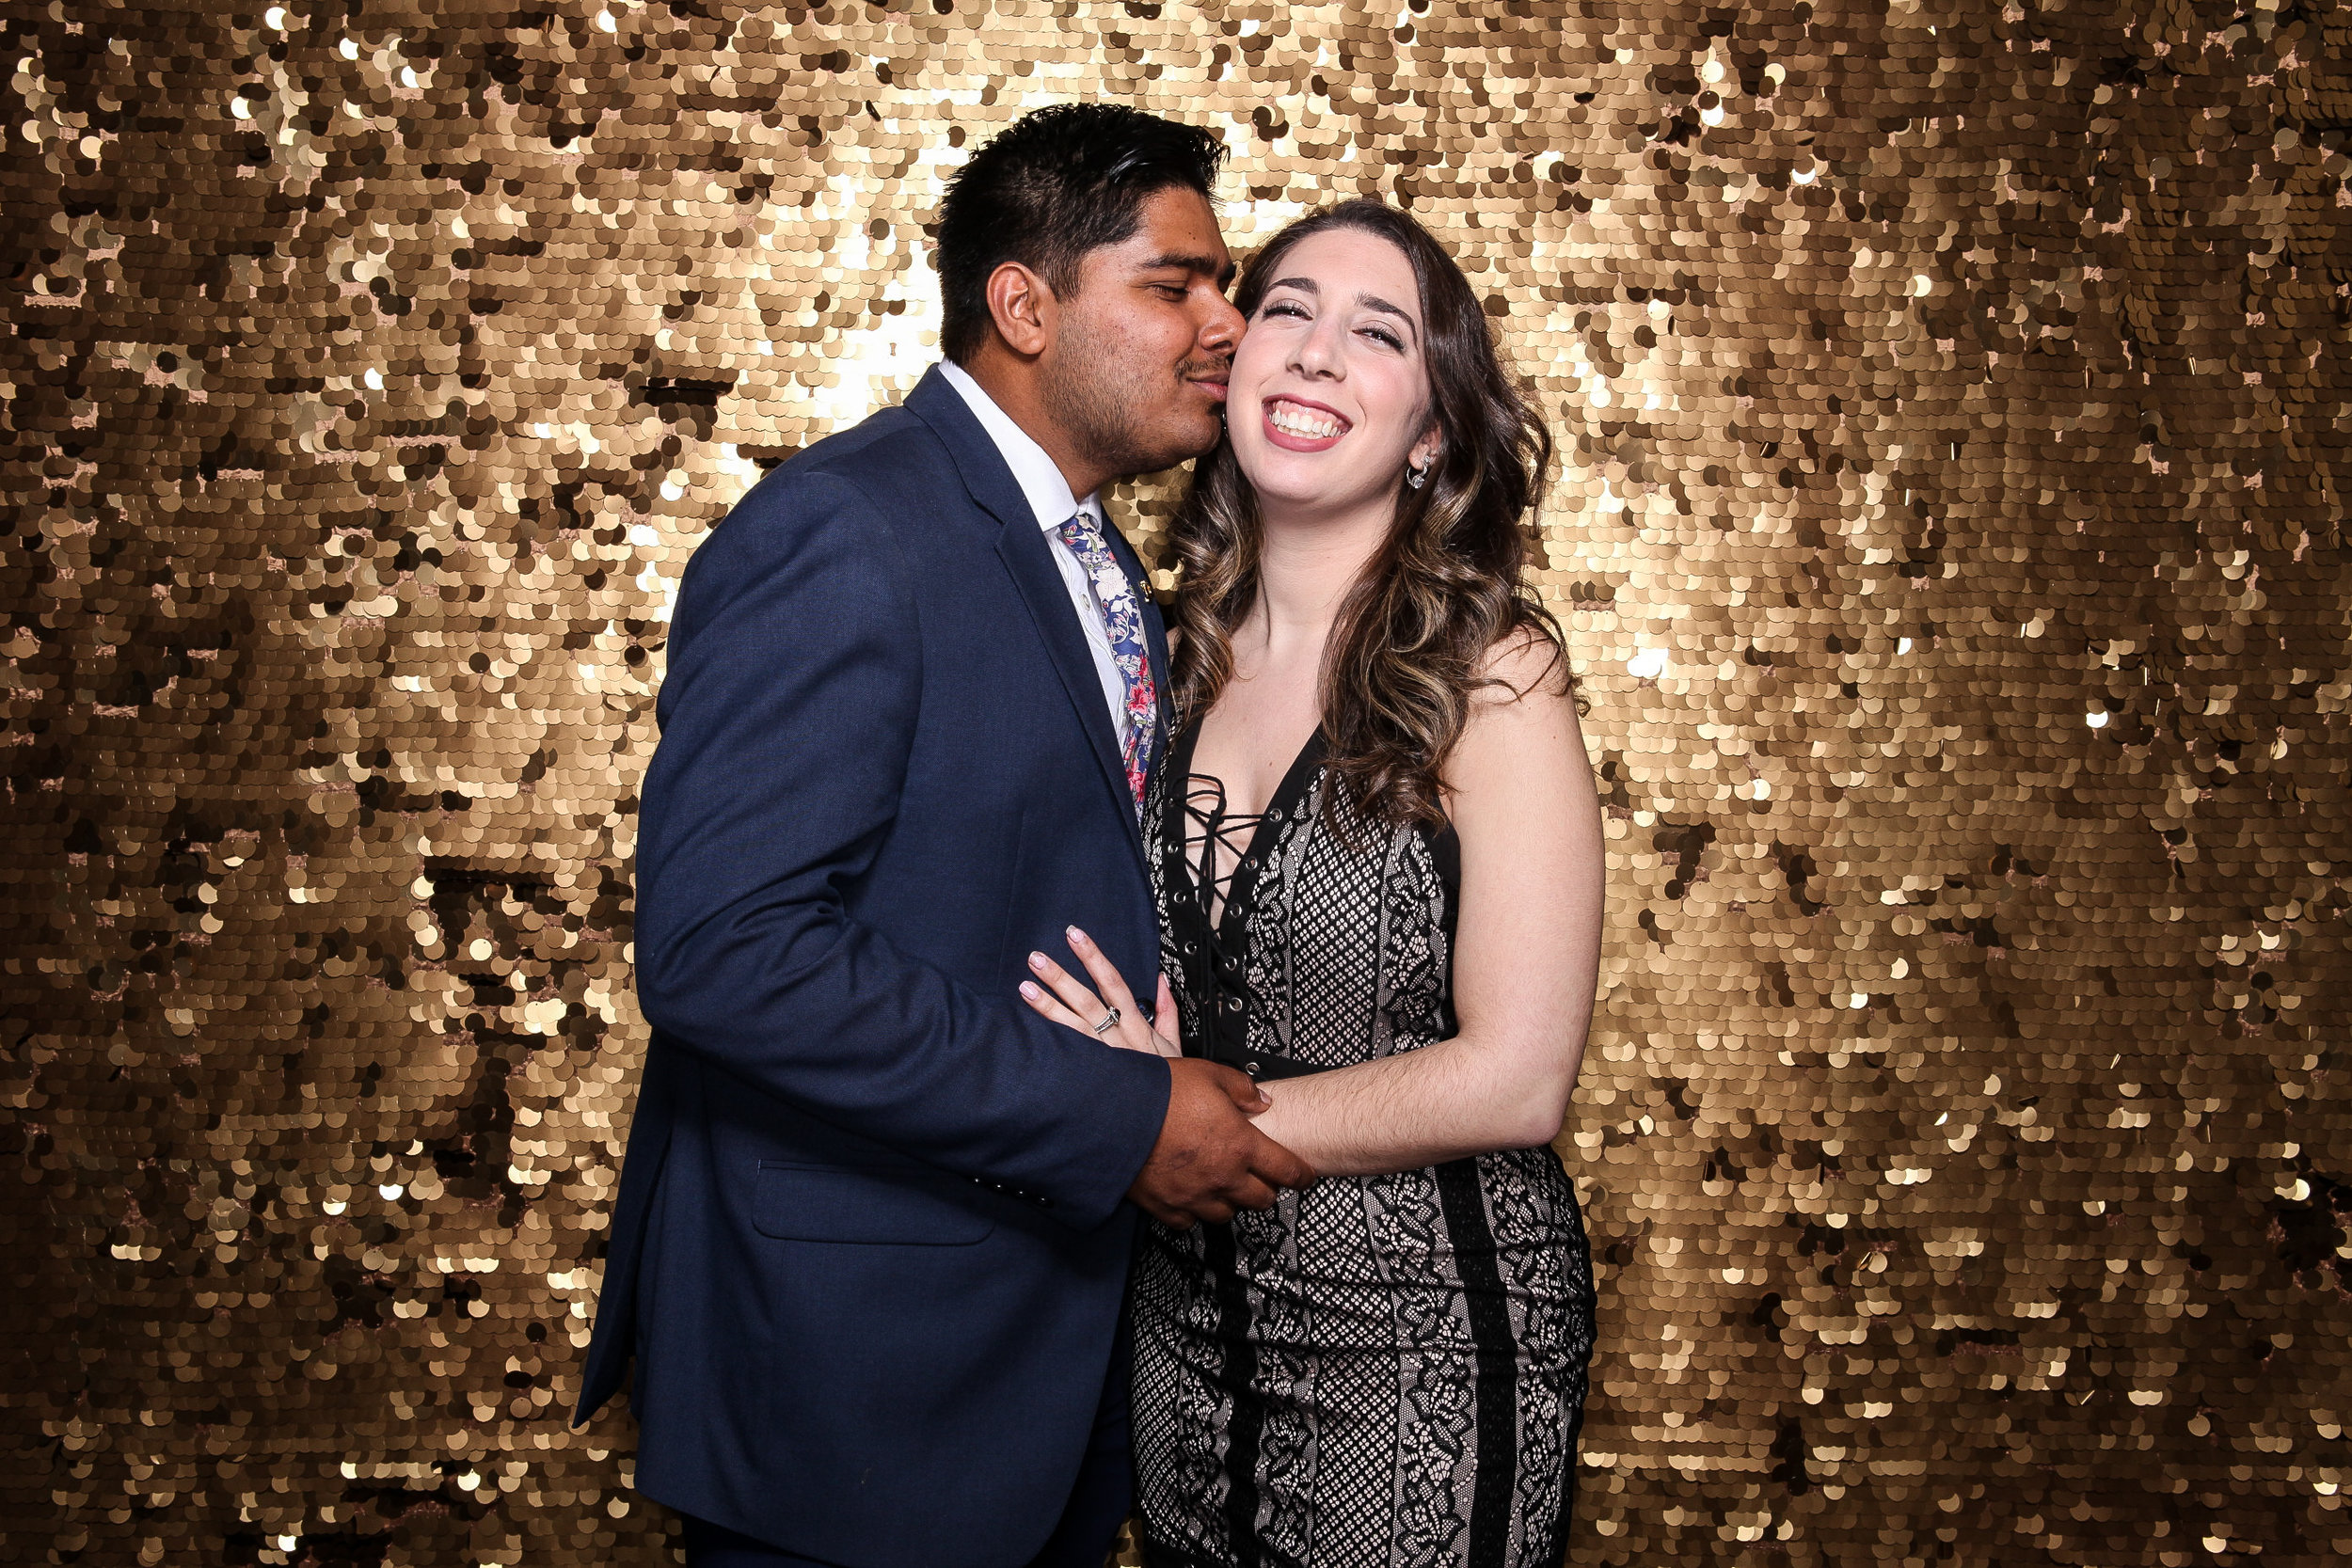 20190503_Adelphi_Senior_Formal-136.jpg